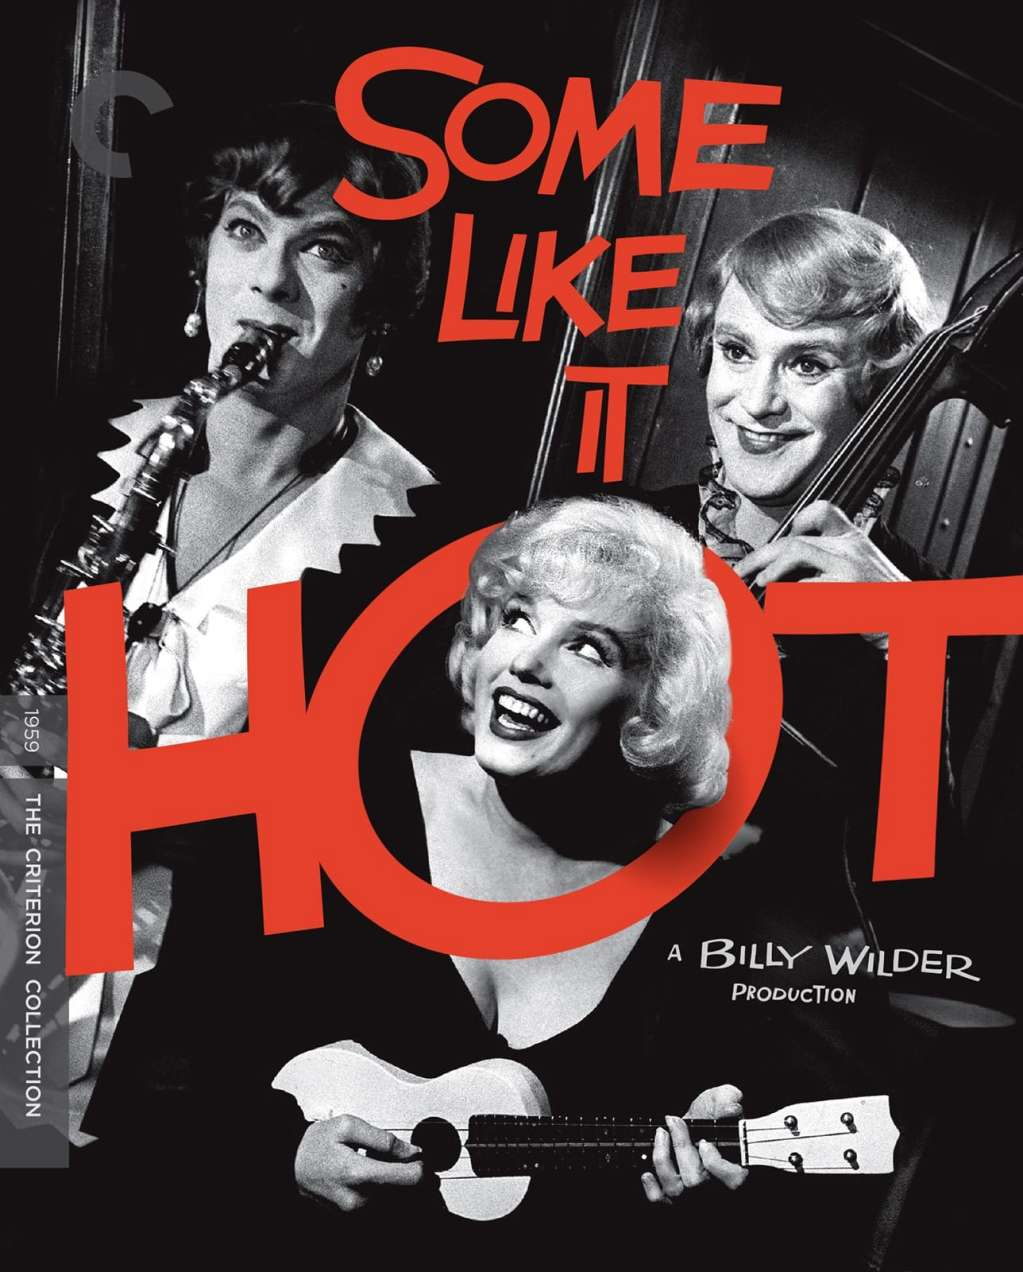 Some Like It Hot kapak